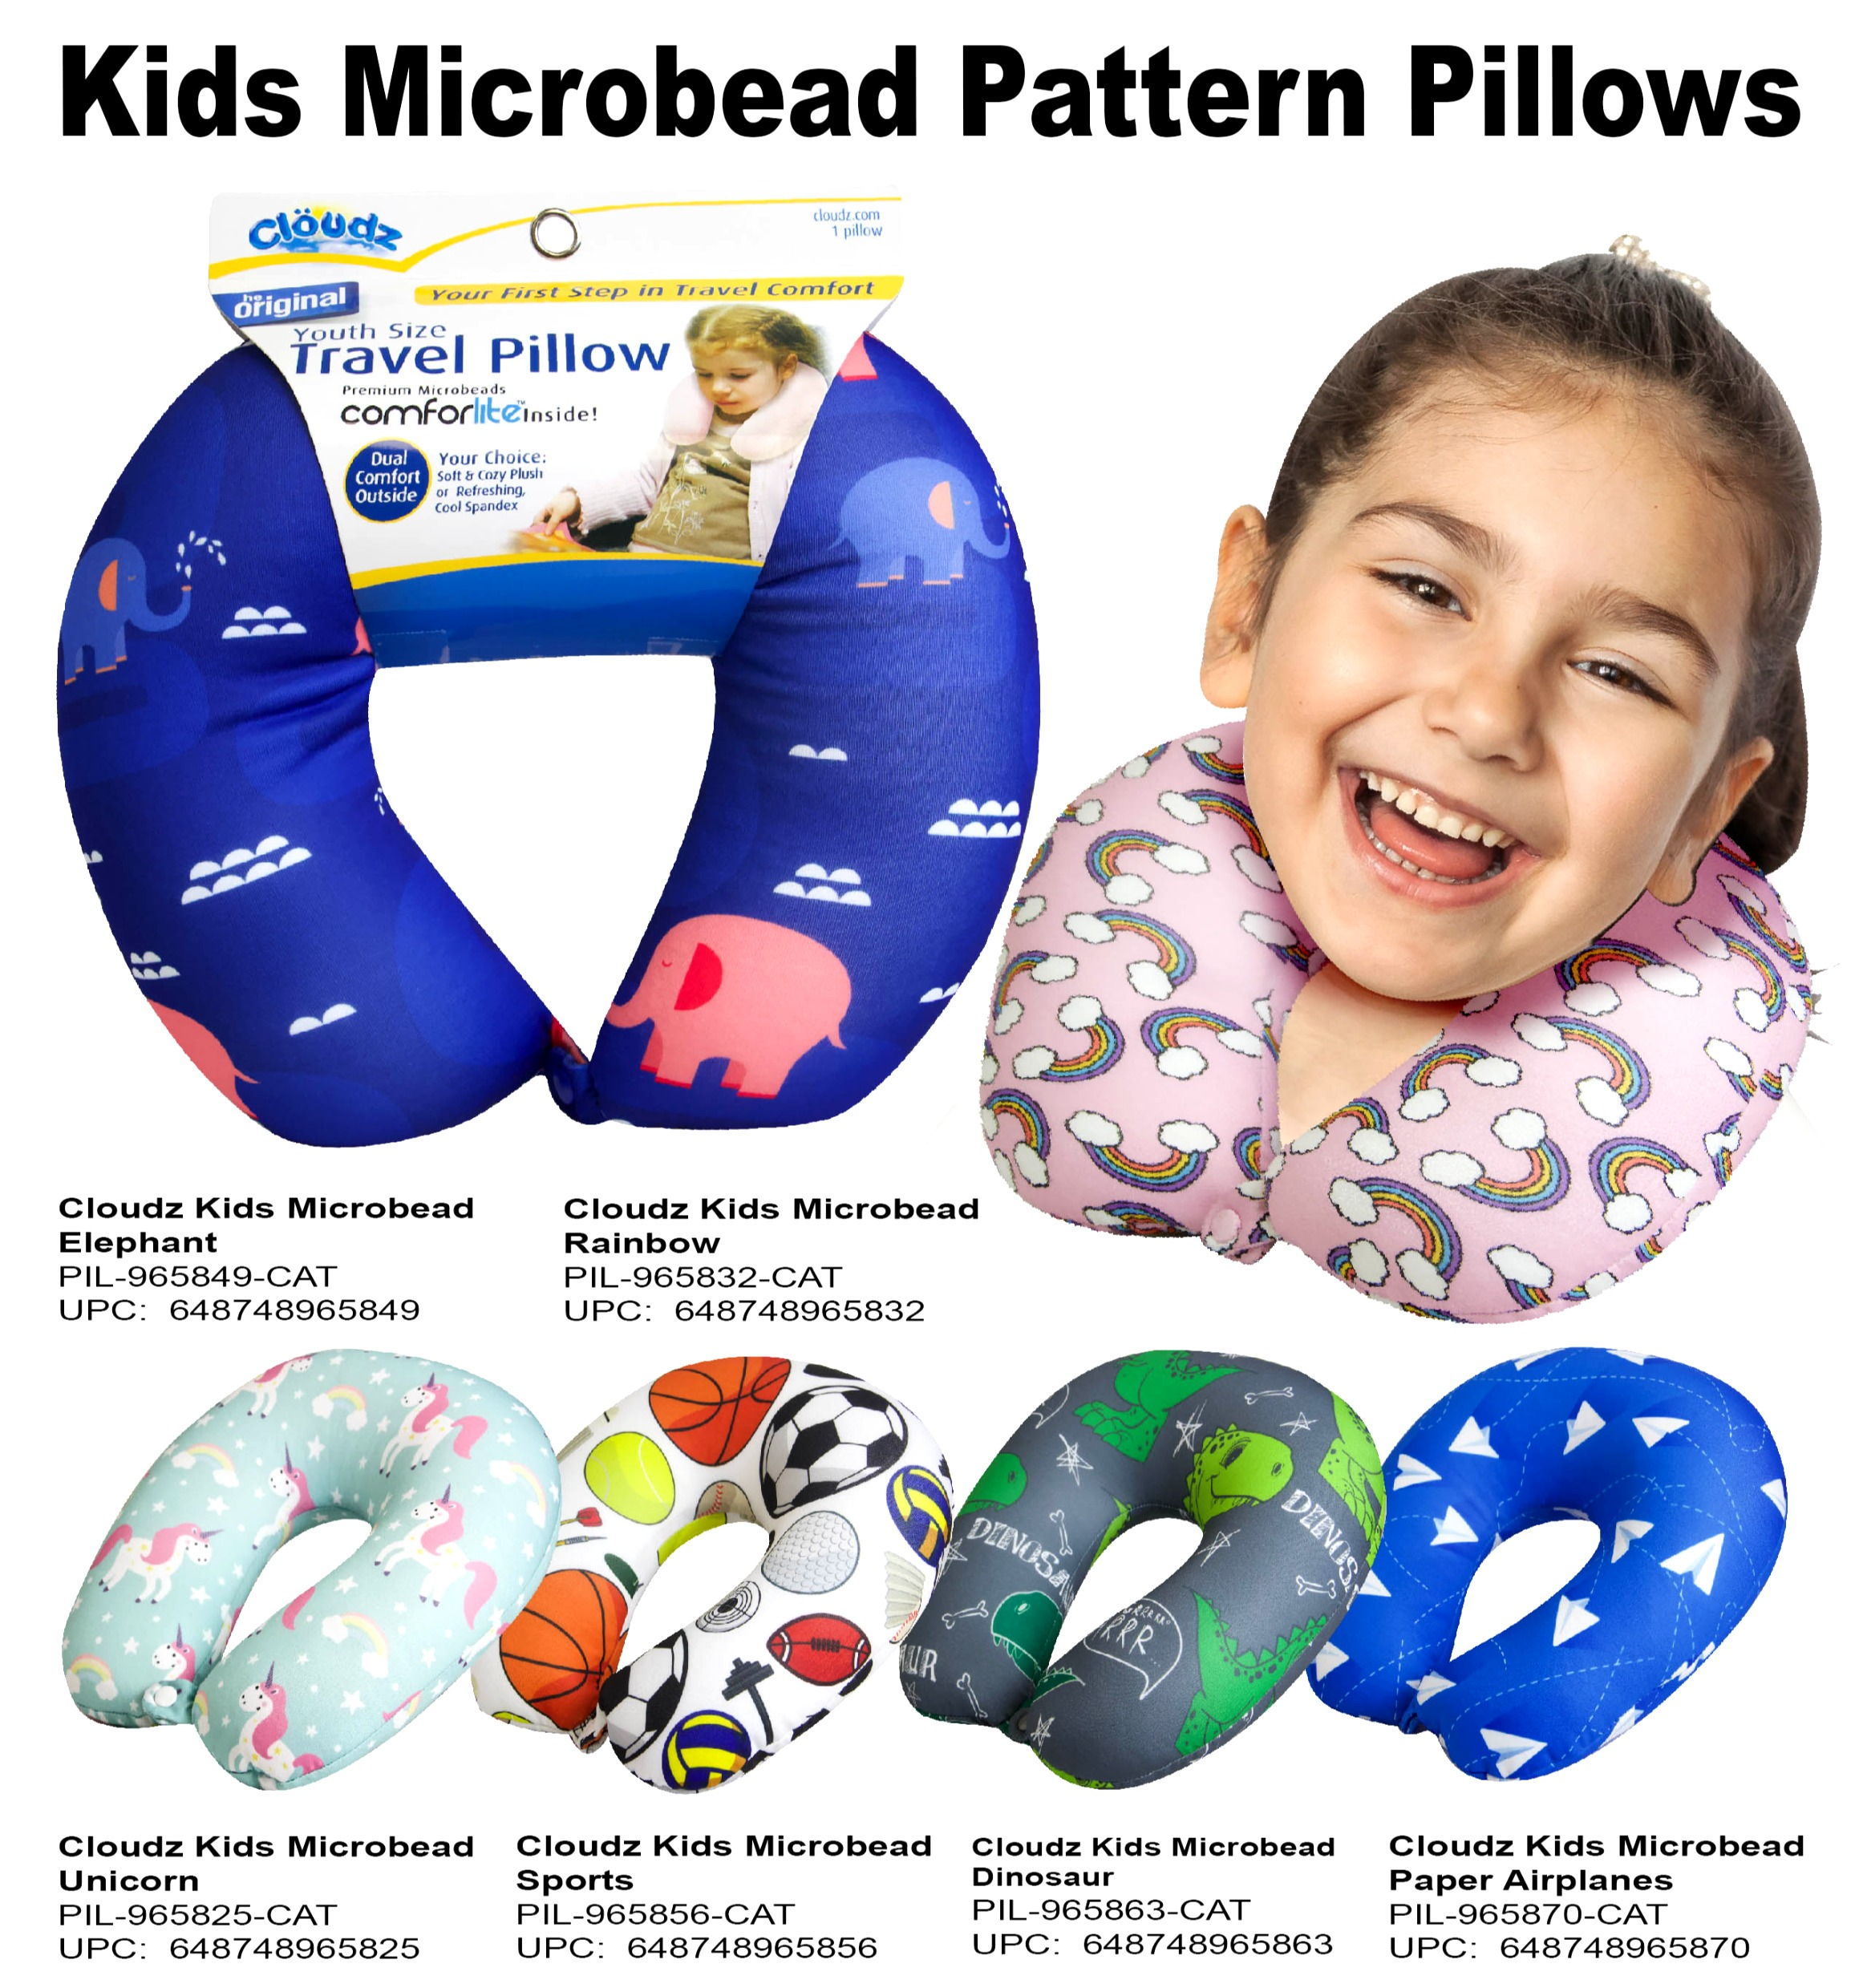 SNI Today - Cloudz Kids Microbead Patter